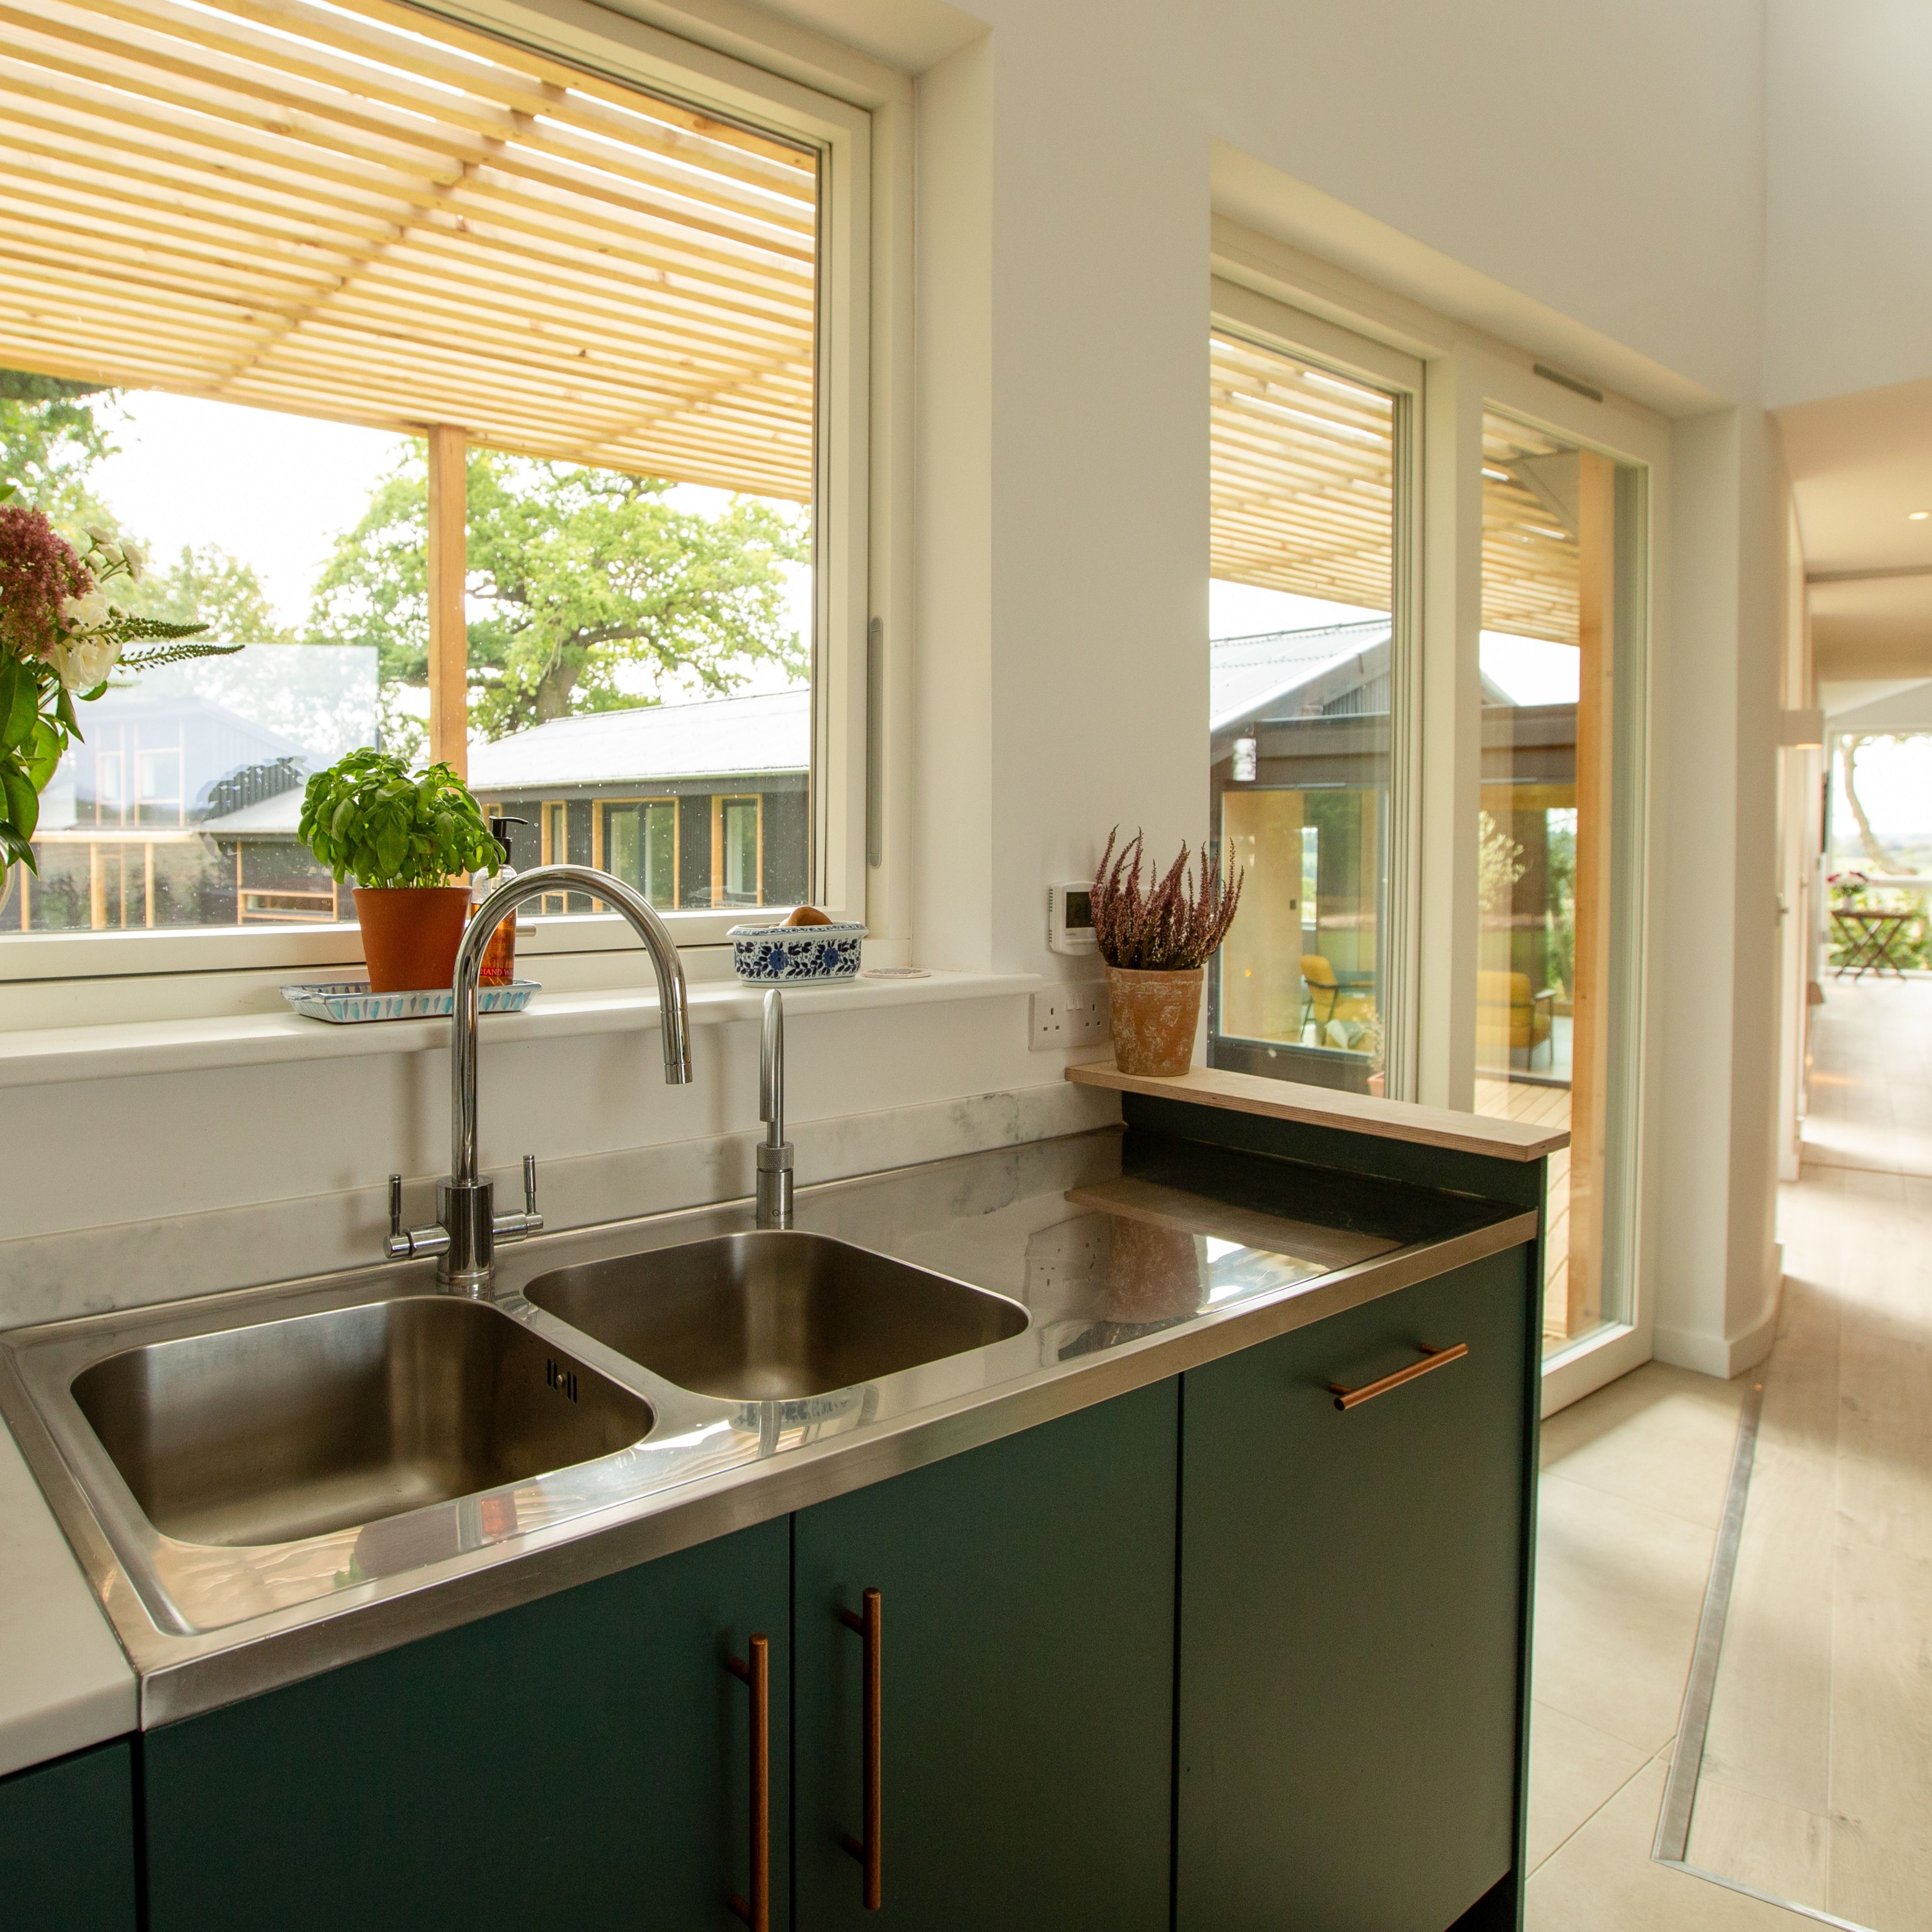 As seen on grand designs toby leeming used our alveus